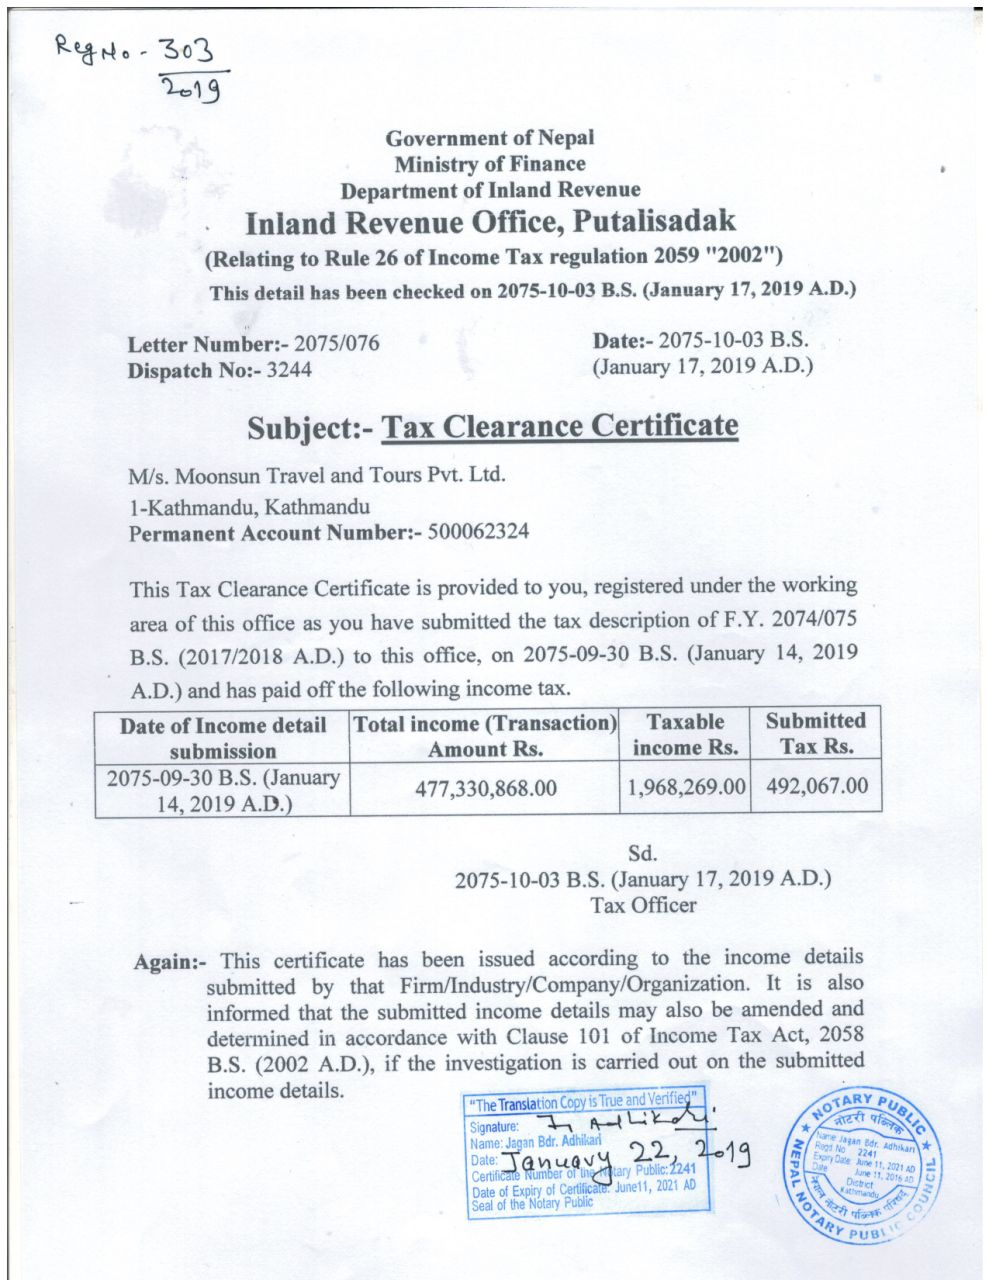 Tax Clearance Certificate 2075-076